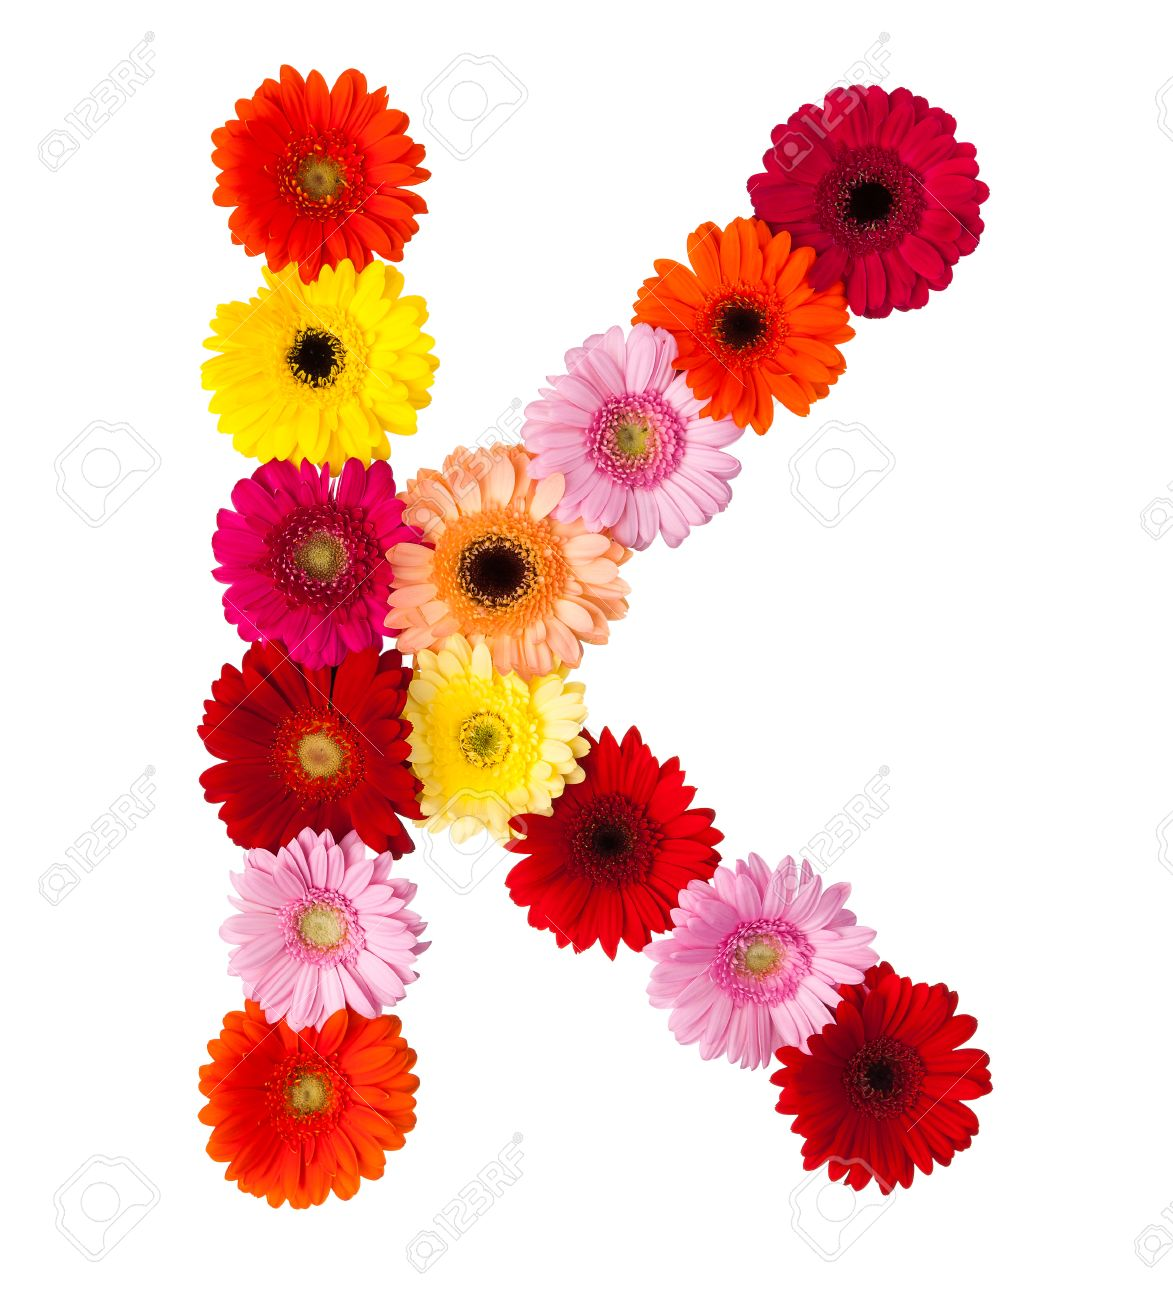 What is a flower that starts with the letter